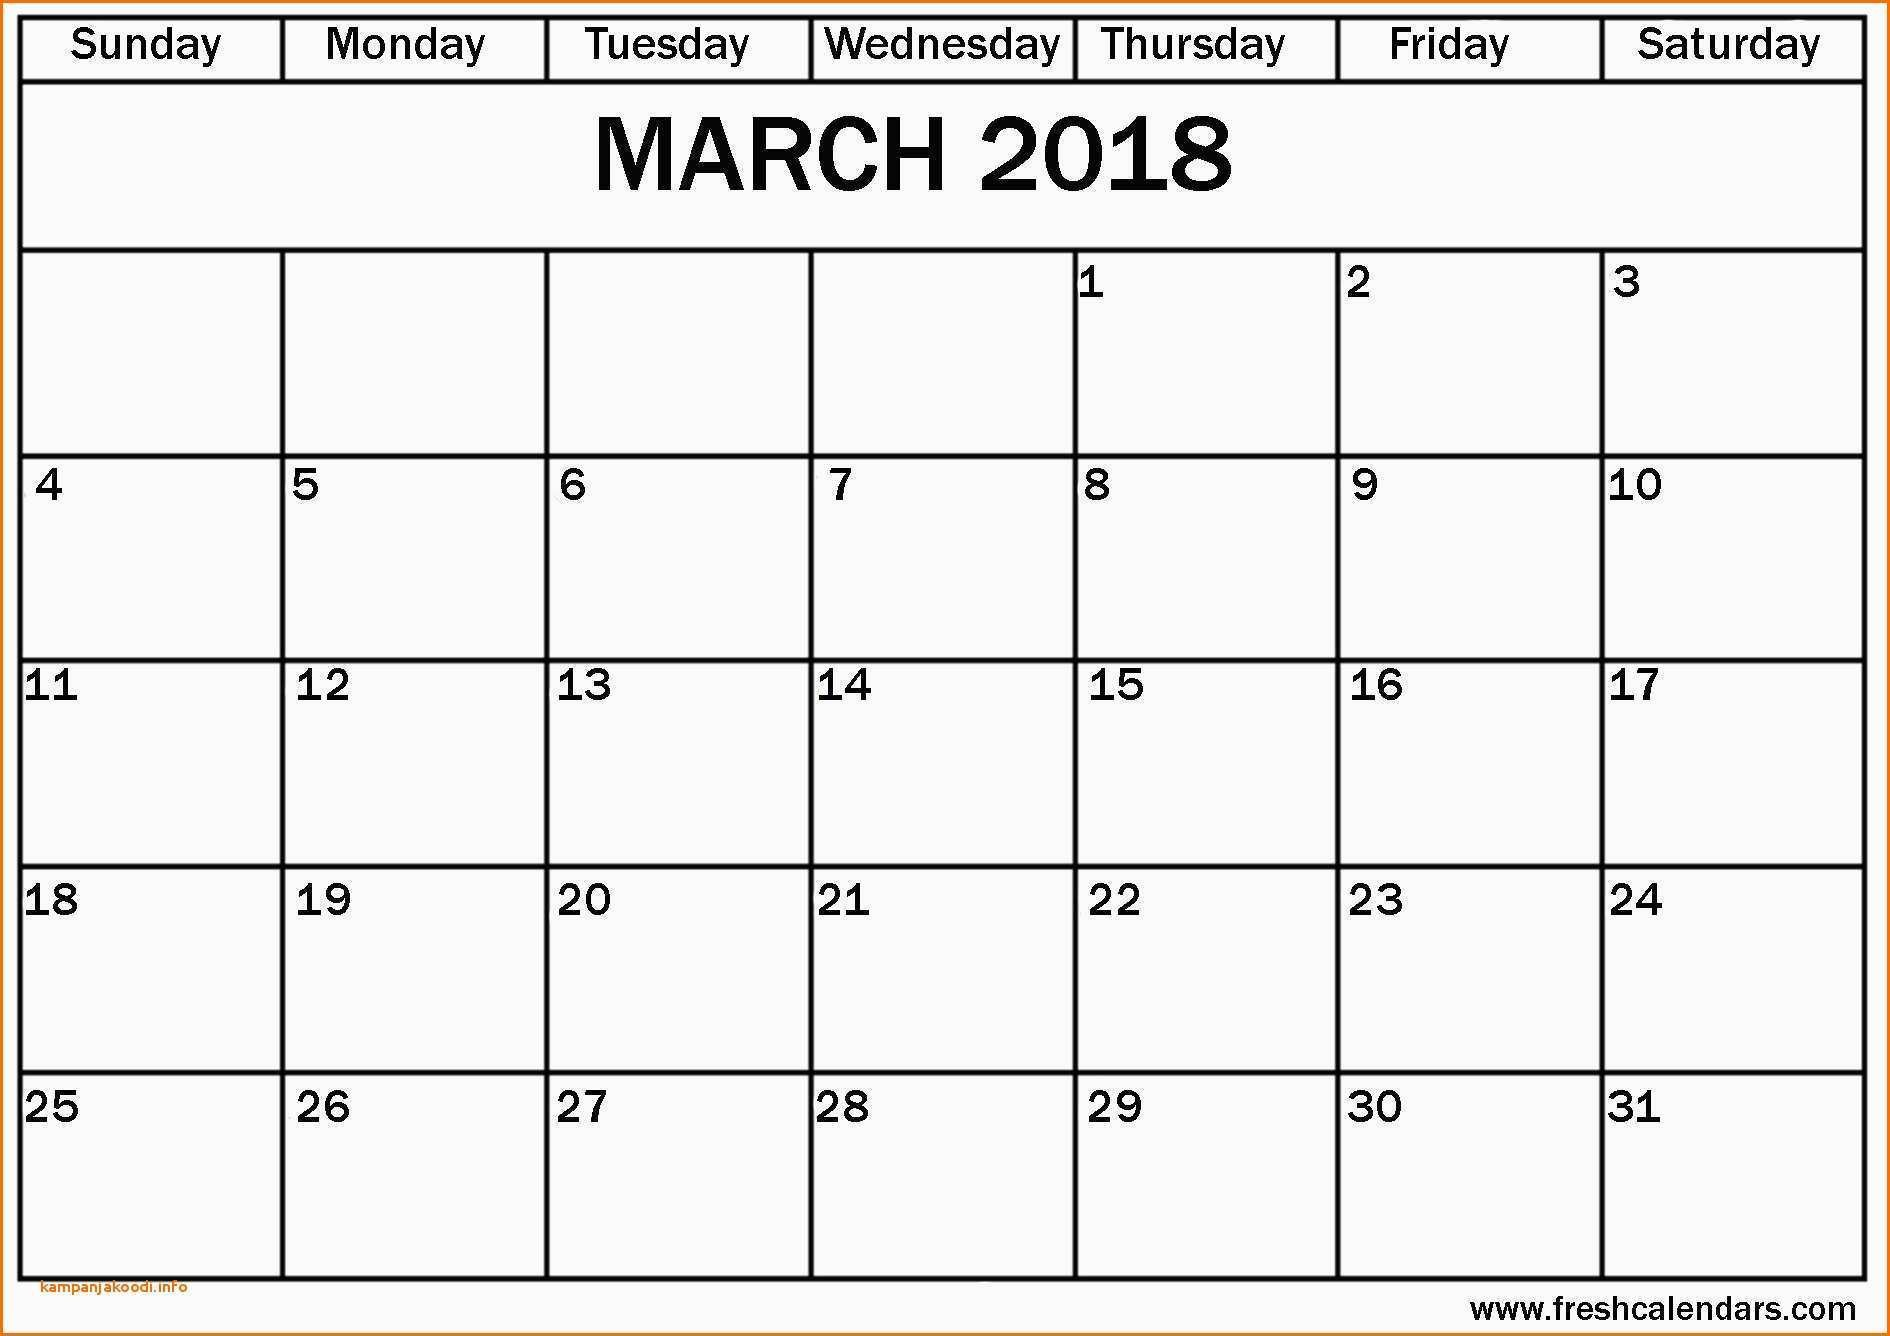 March Calendar Kids Más Actual Calendar Children S Birthday Invitations Lovely Children 26 Of March Calendar Kids Más Actual Free Calendar Template 2018 ¢Ë†Å¡ Calendar Powerpoint Template Fresh